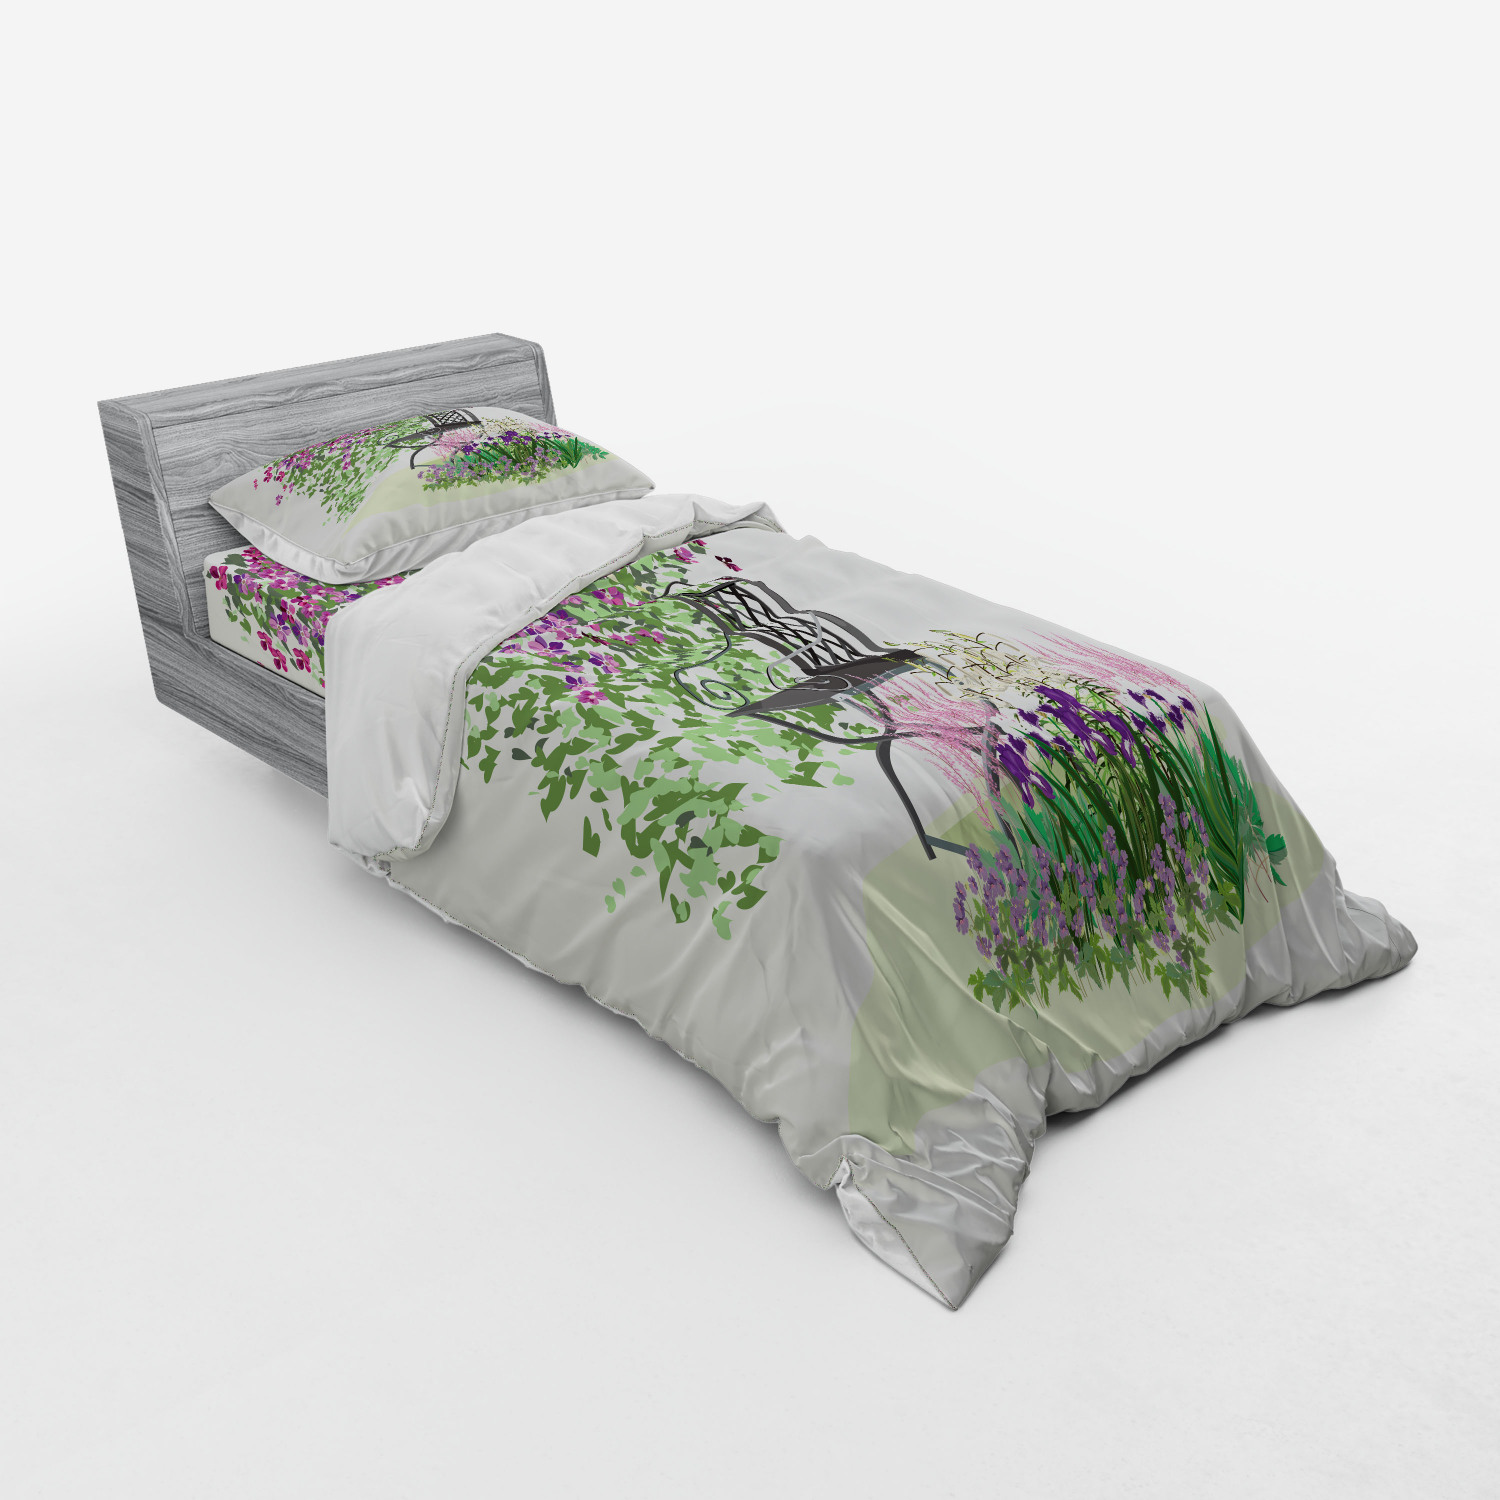 thumbnail 81 - Ambesonne Summer Bedding Set Duvet Cover Sham Fitted Sheet in 3 Sizes